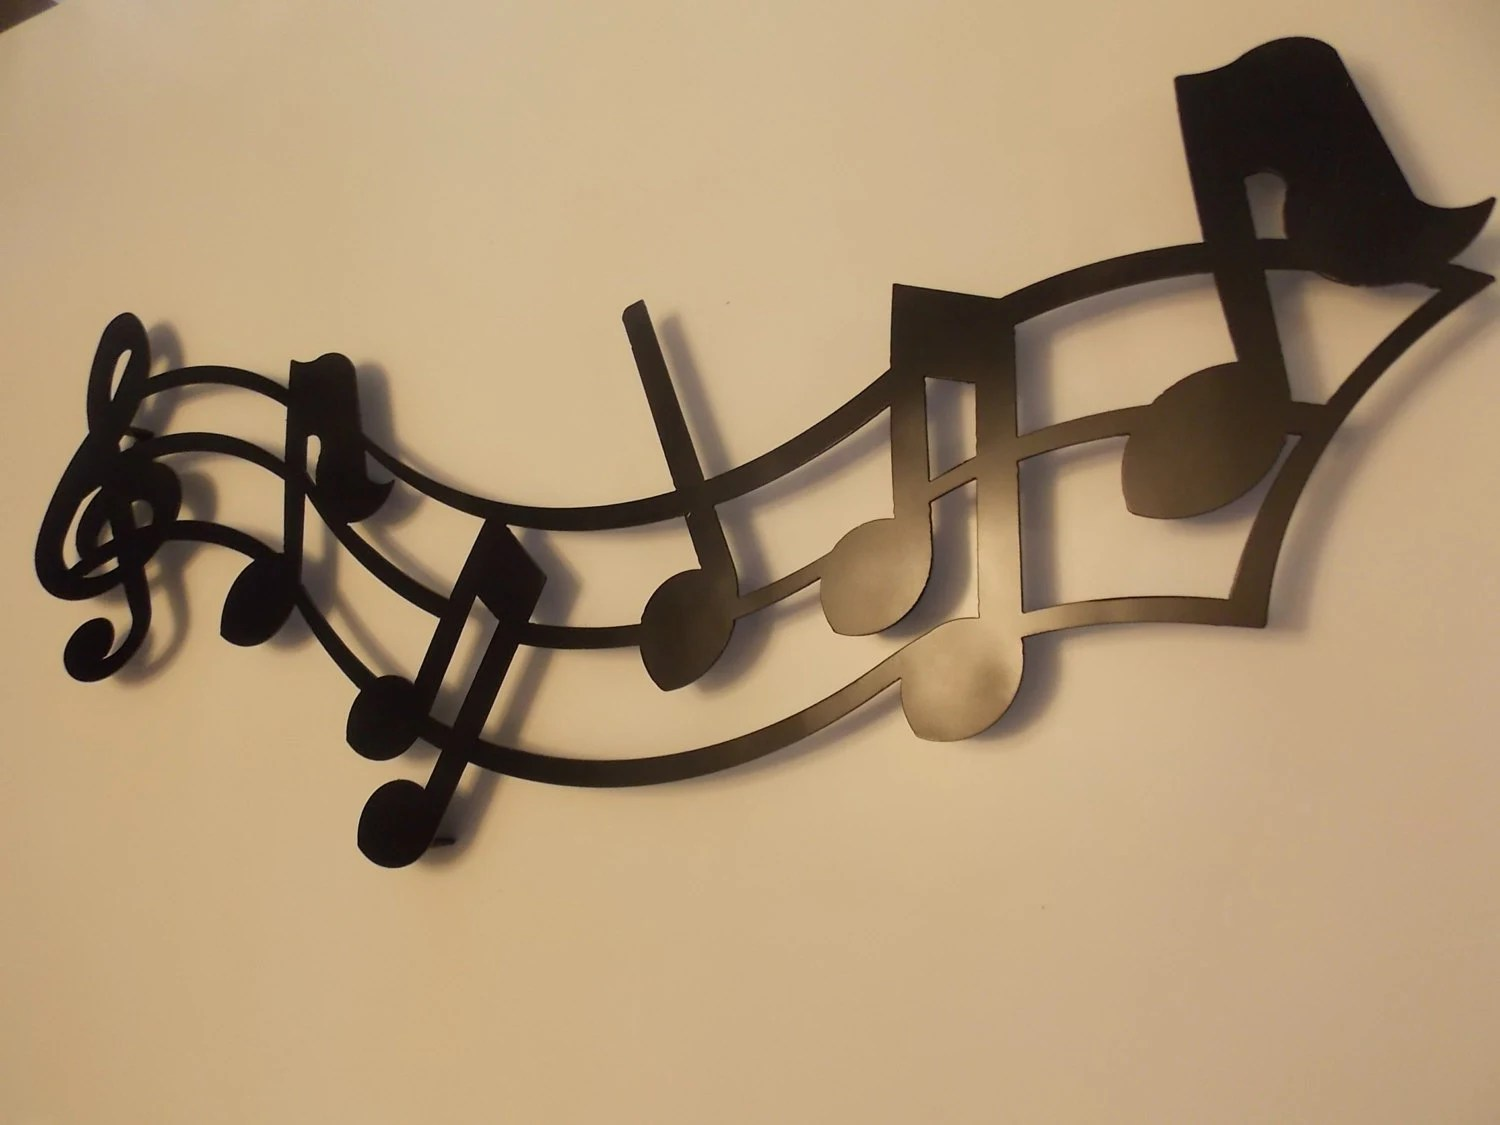 Musical Wall Art Metal Musical Notes Metal Wall Art In Black Or By